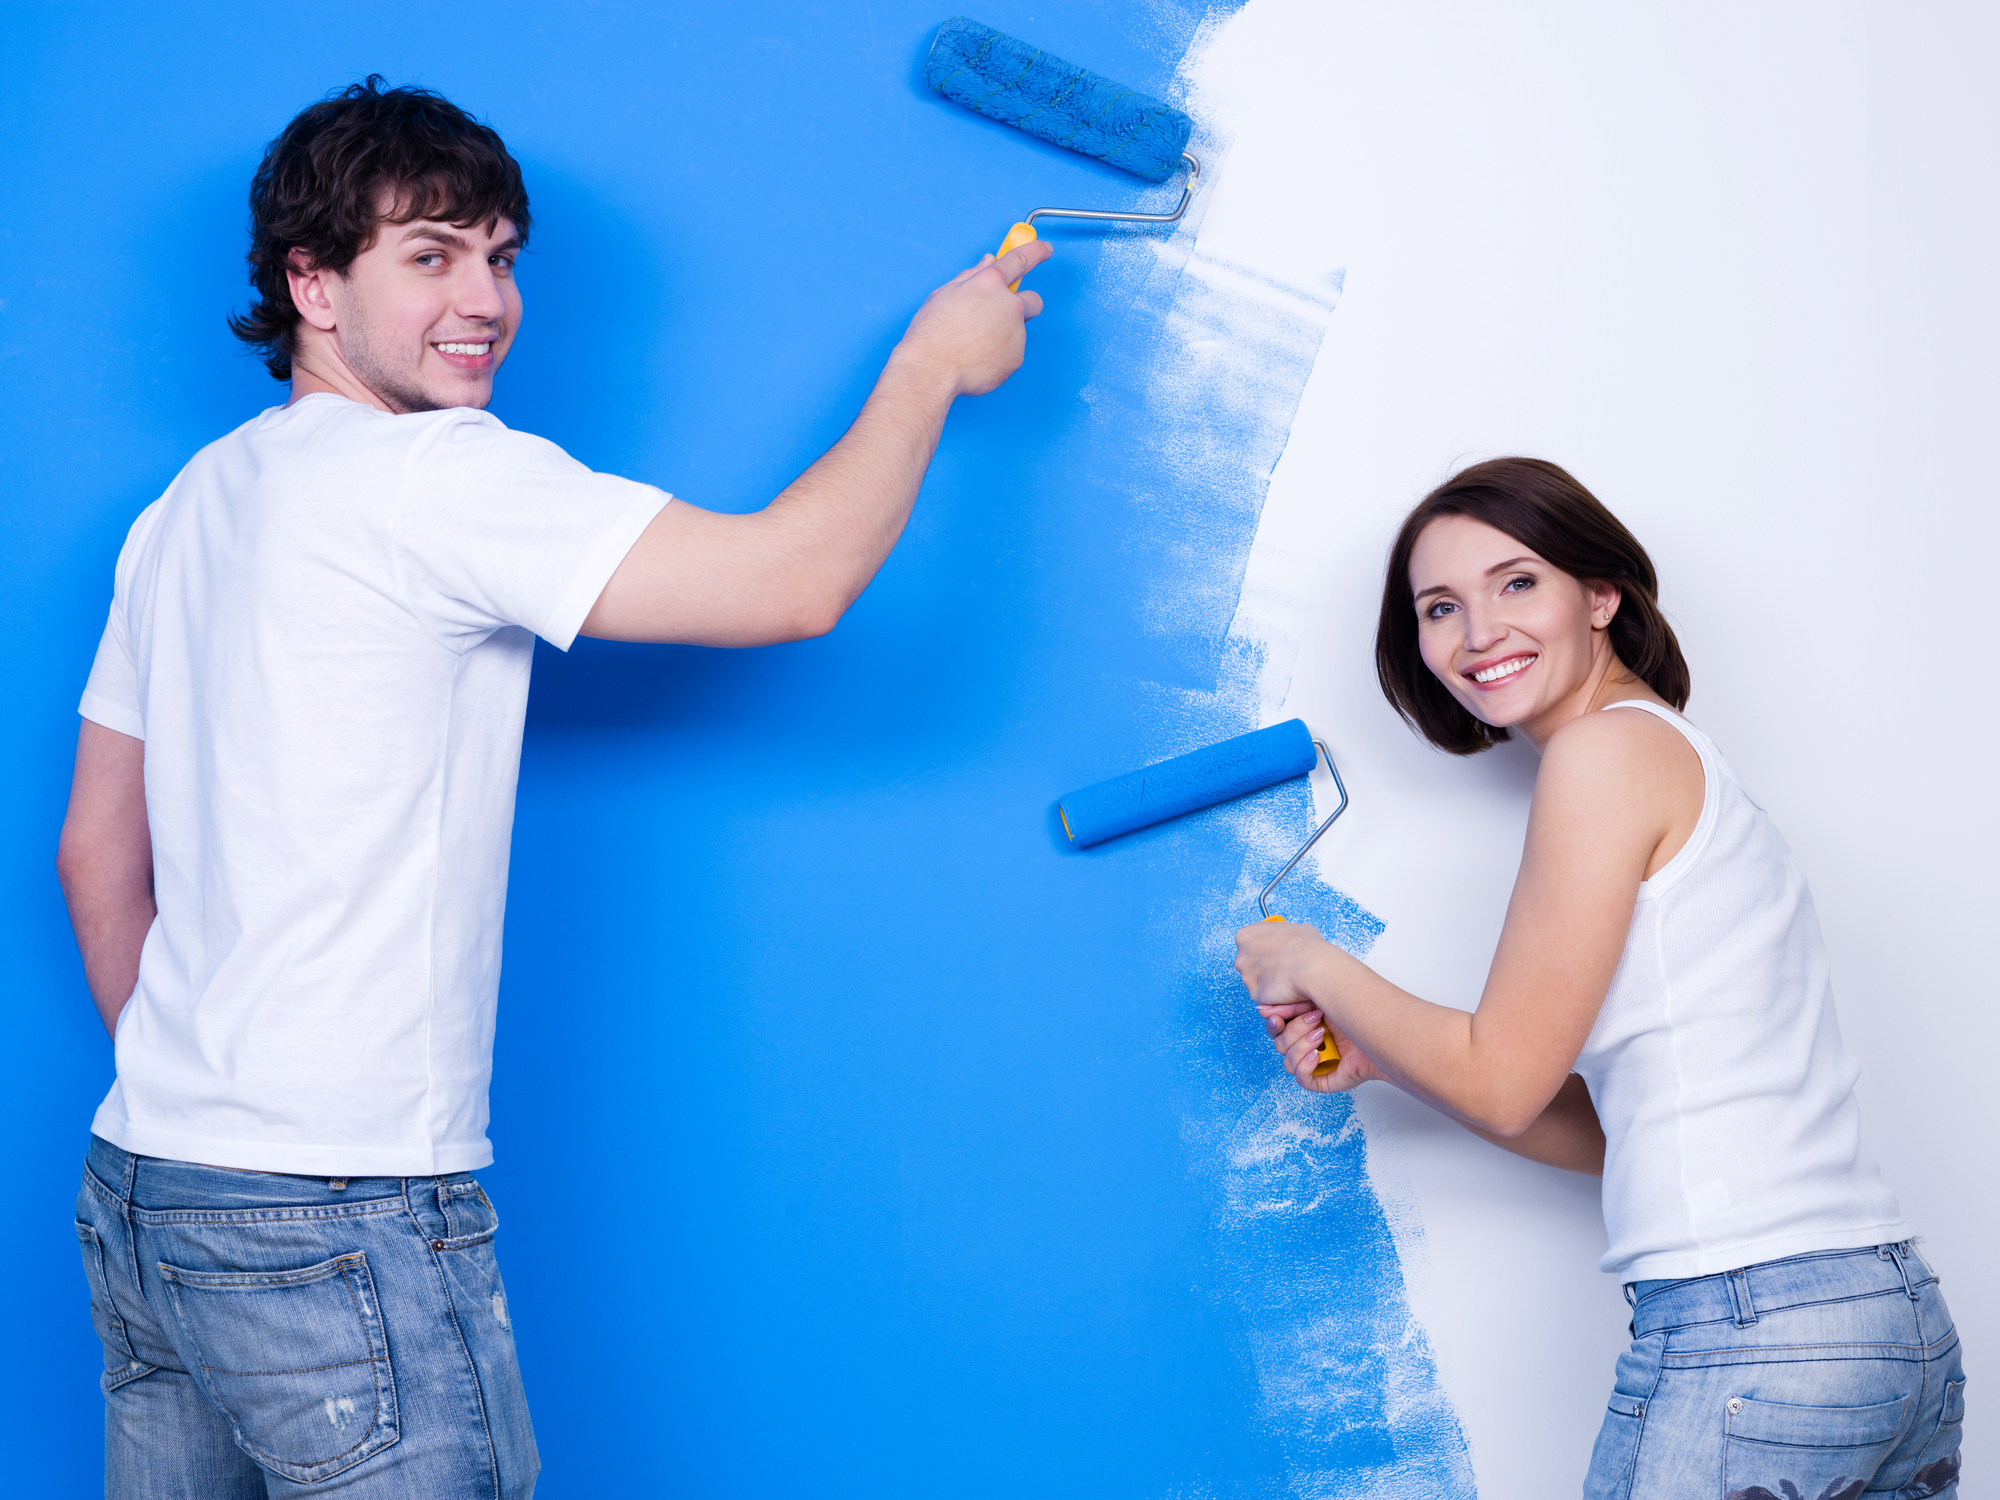 Brushing the wall by happy